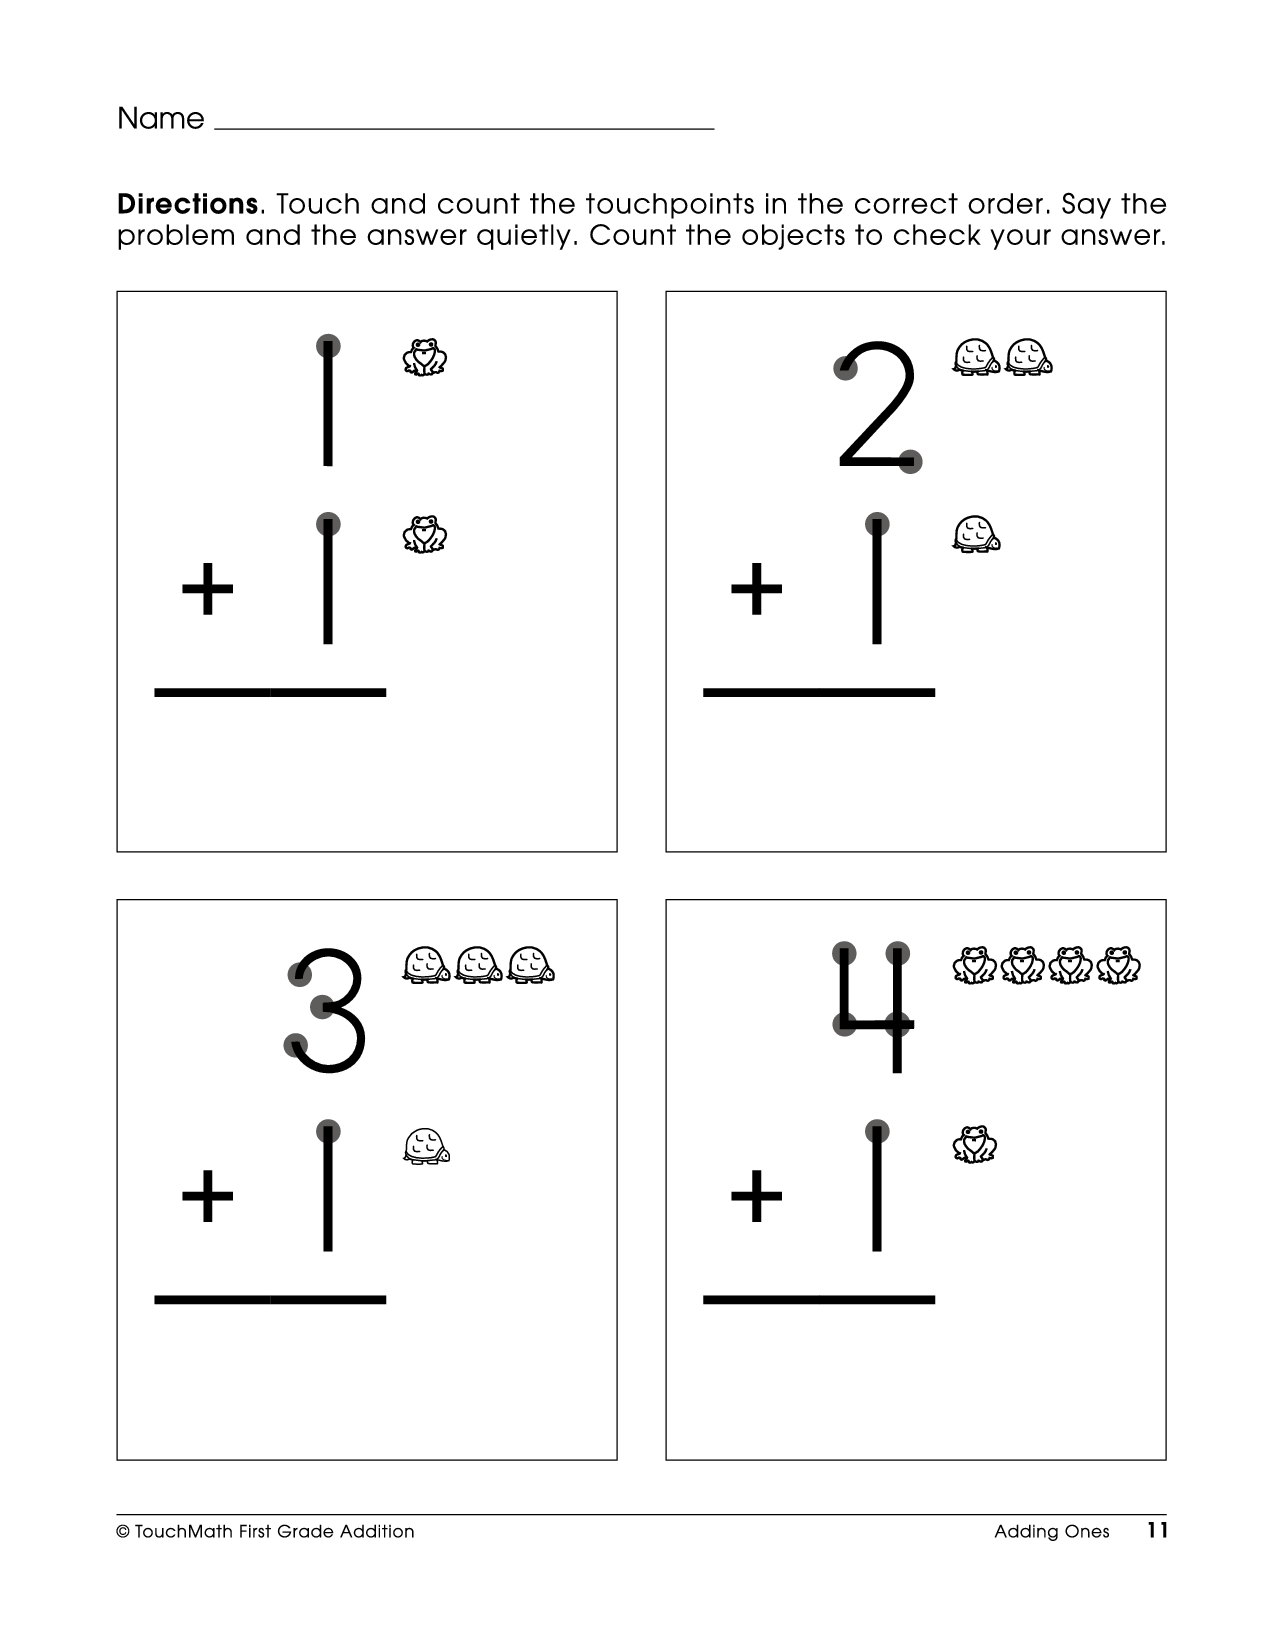 Touch Point Math Worksheet Touch Math Worksheets Touch Math Touch Point Math